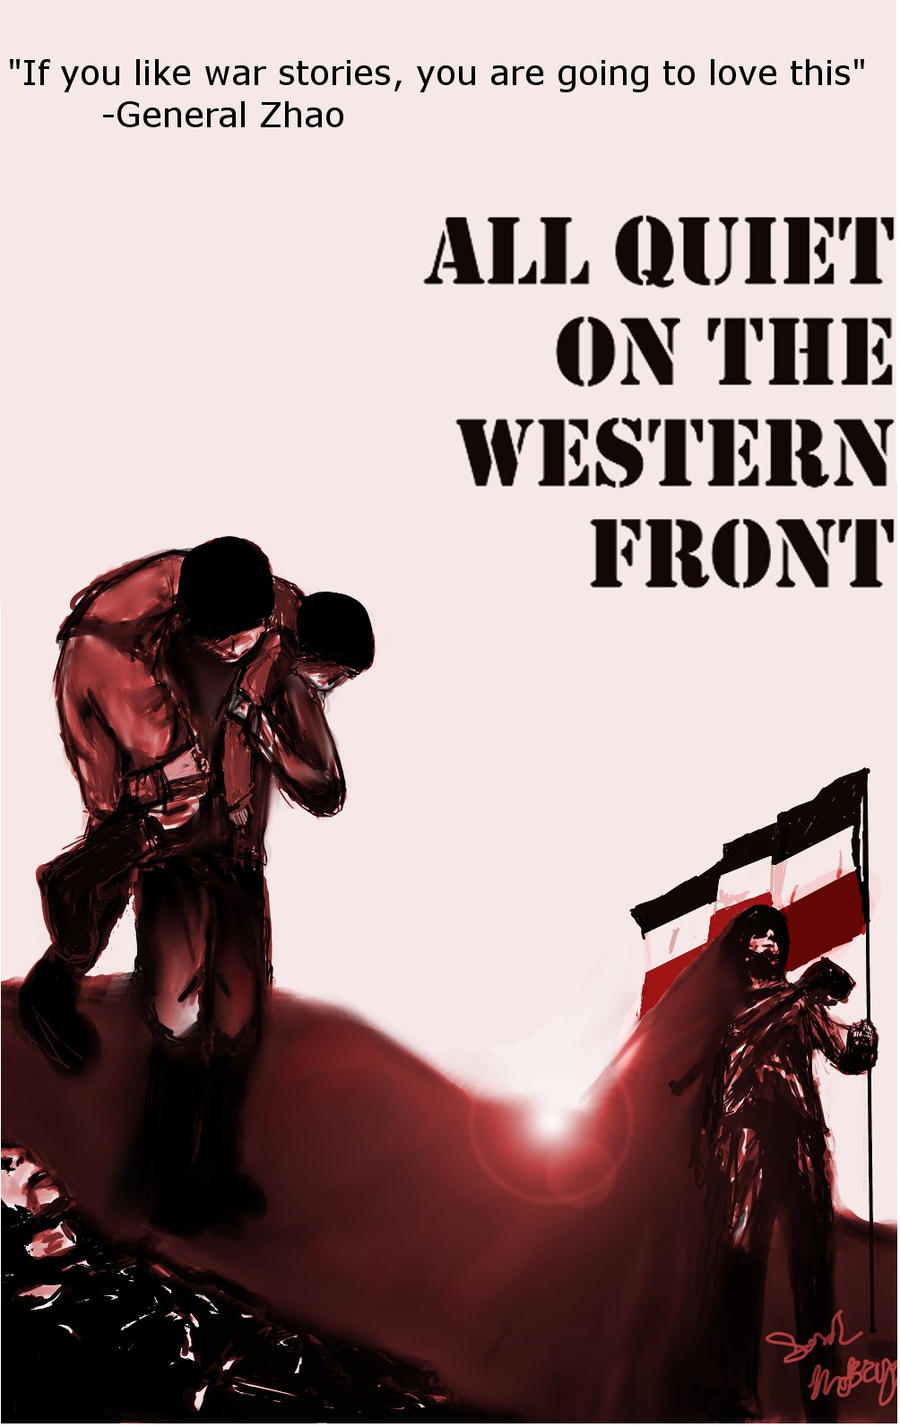 Thesis about all quiet on the western front